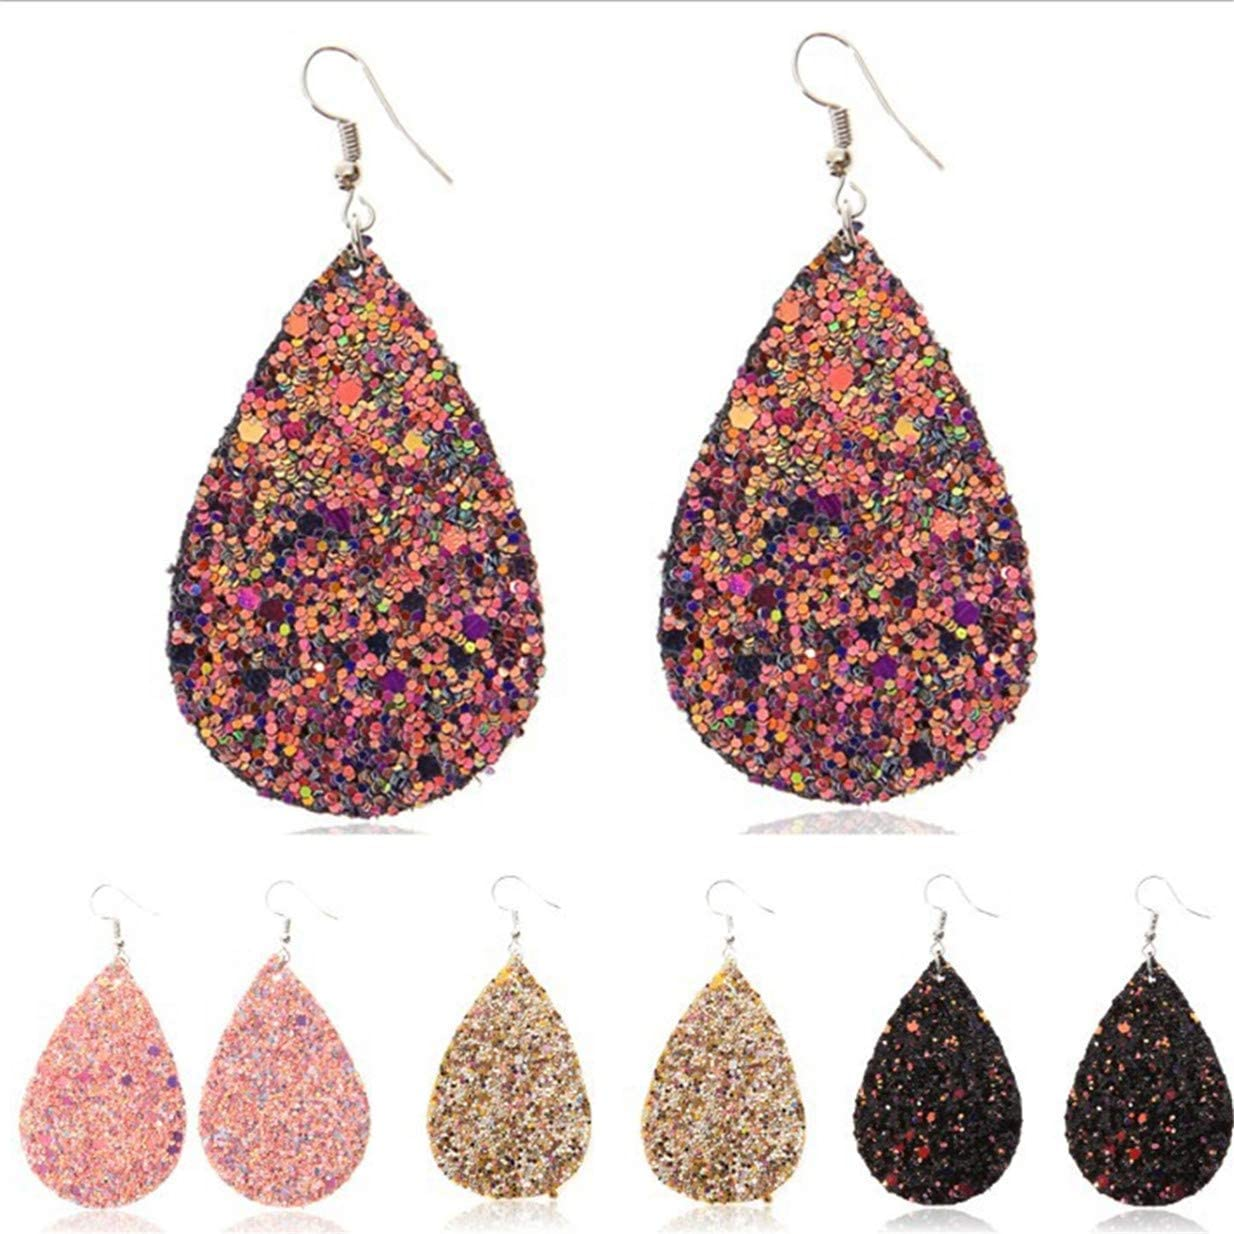 6 Pairs Elegant Faux Leather Earrings Set Lightweight Leather Earrings Teardrop Leaf Earrings Bohemia Glitter Sequins Faux Leather Earrings for Women Girls